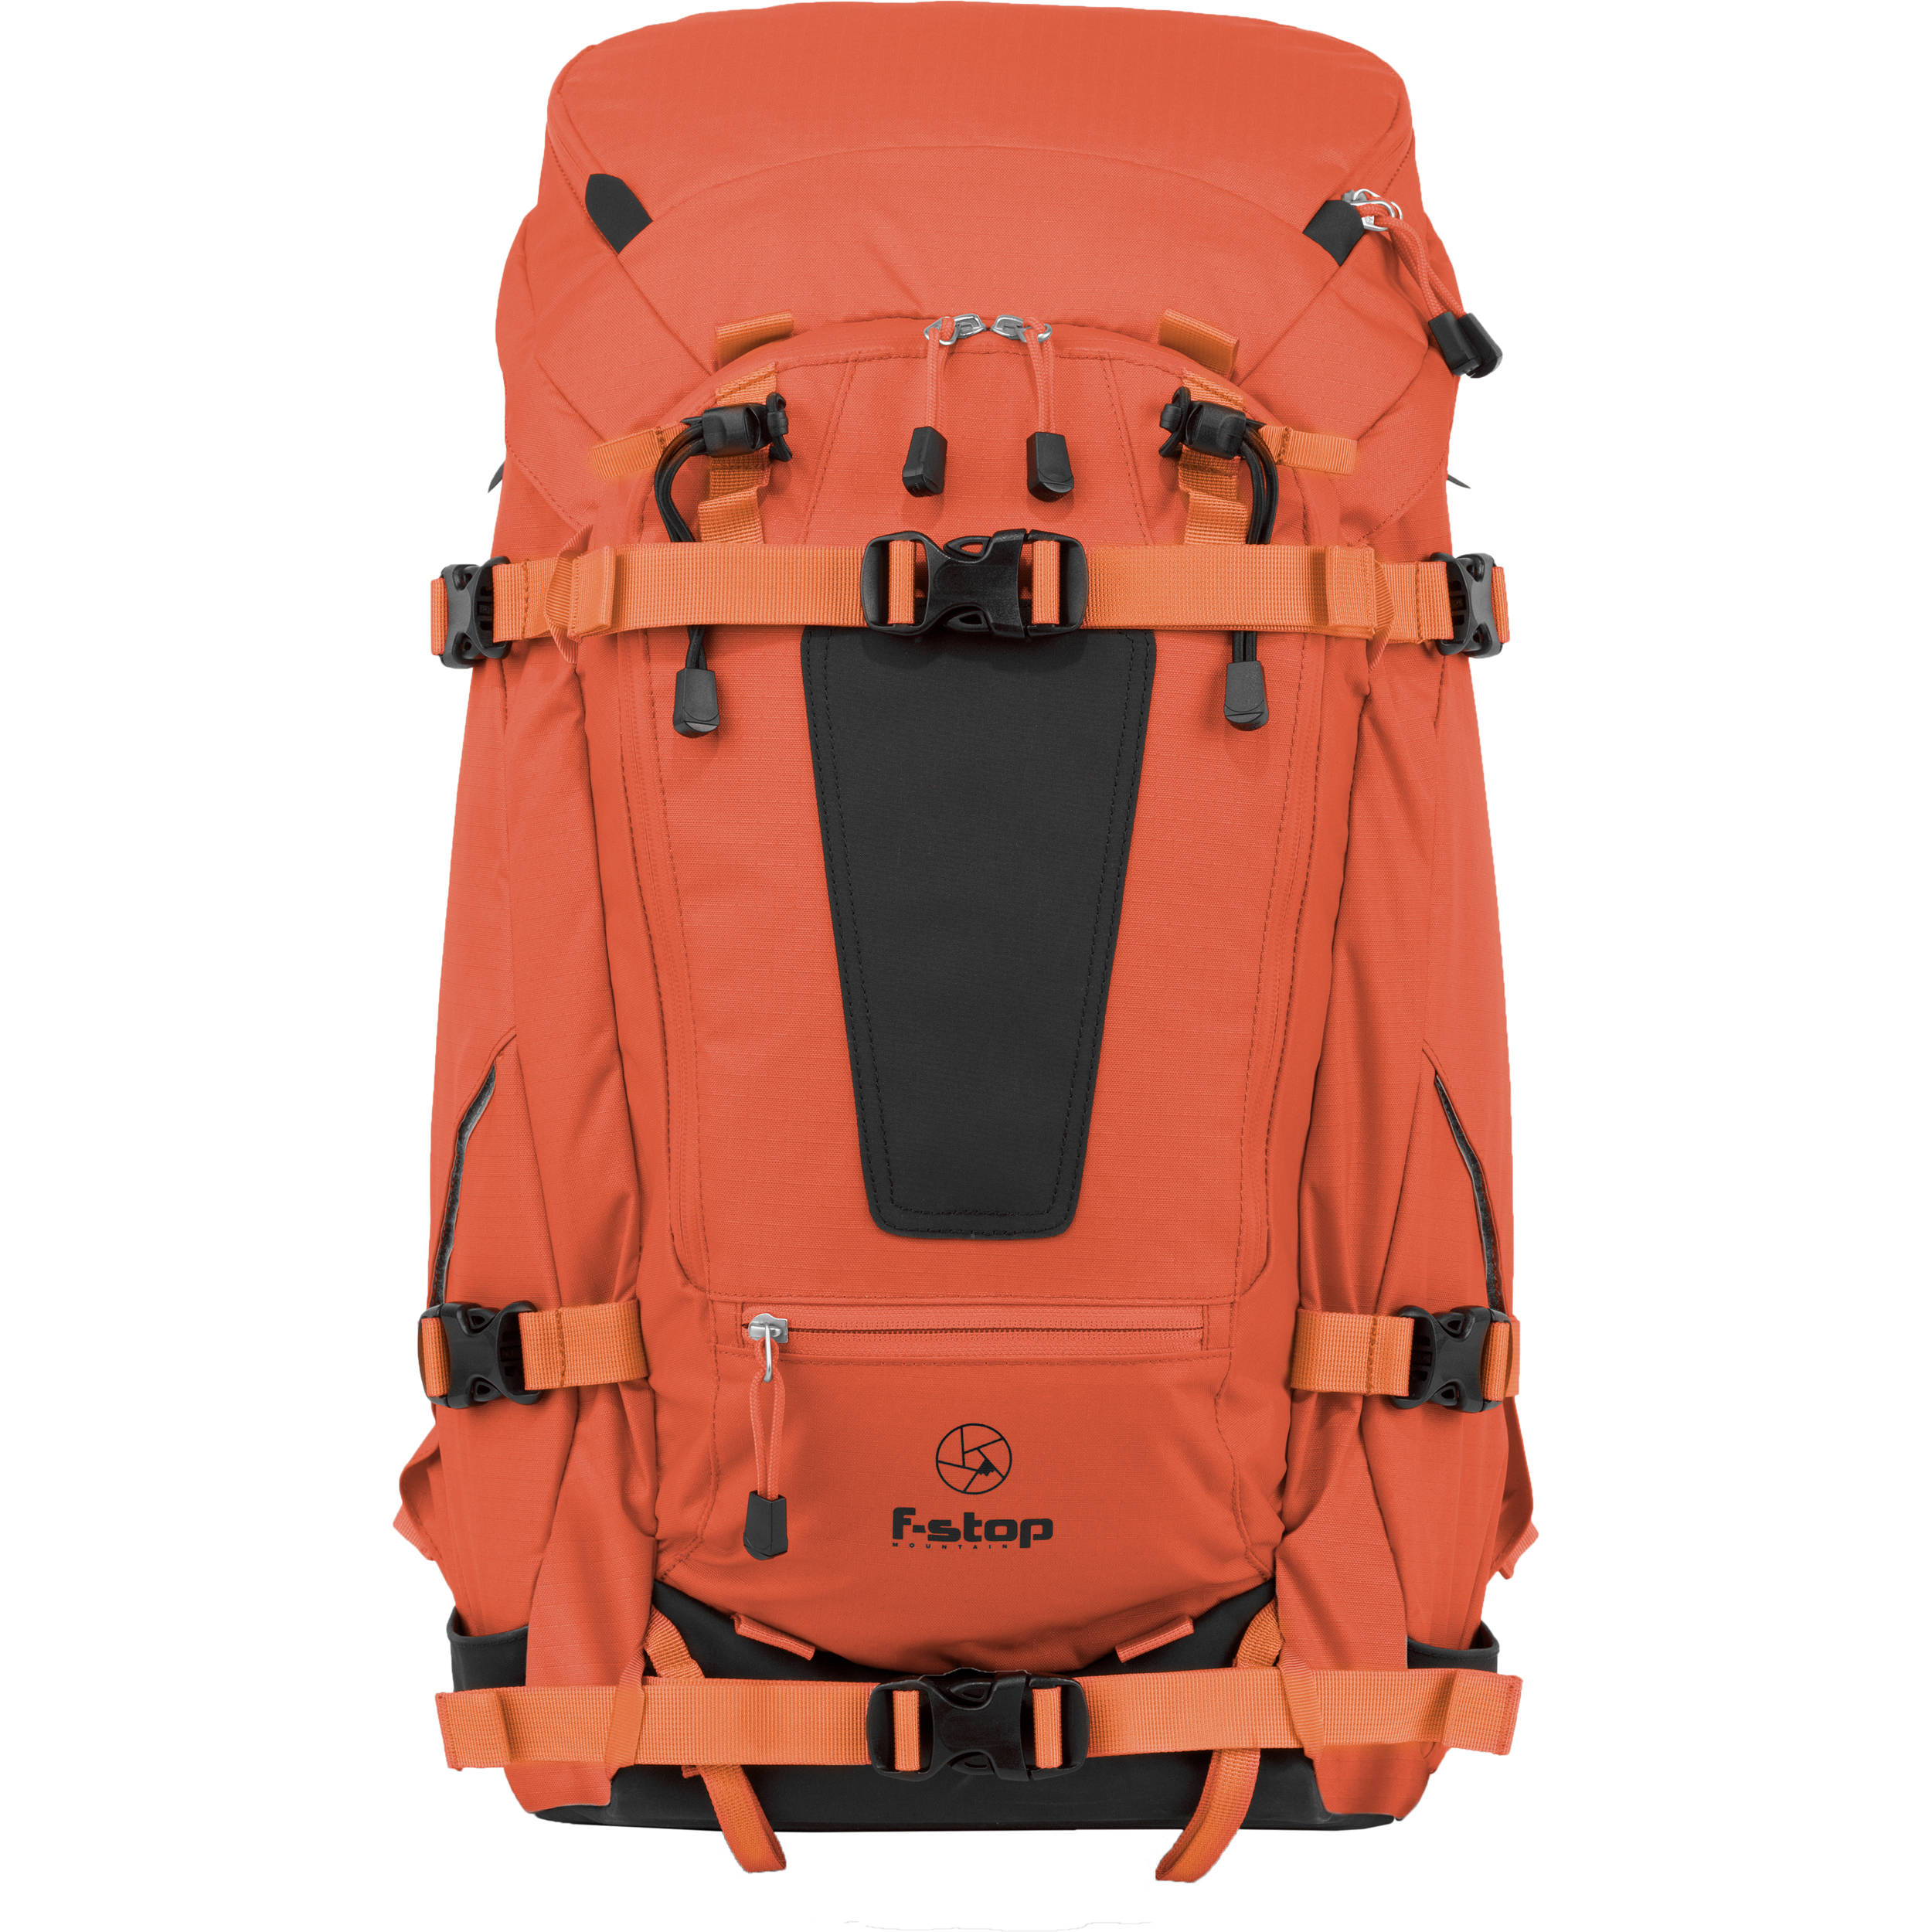 f-stop Mountain Series Tilopa Backpack M115-72 B&H Photo Video